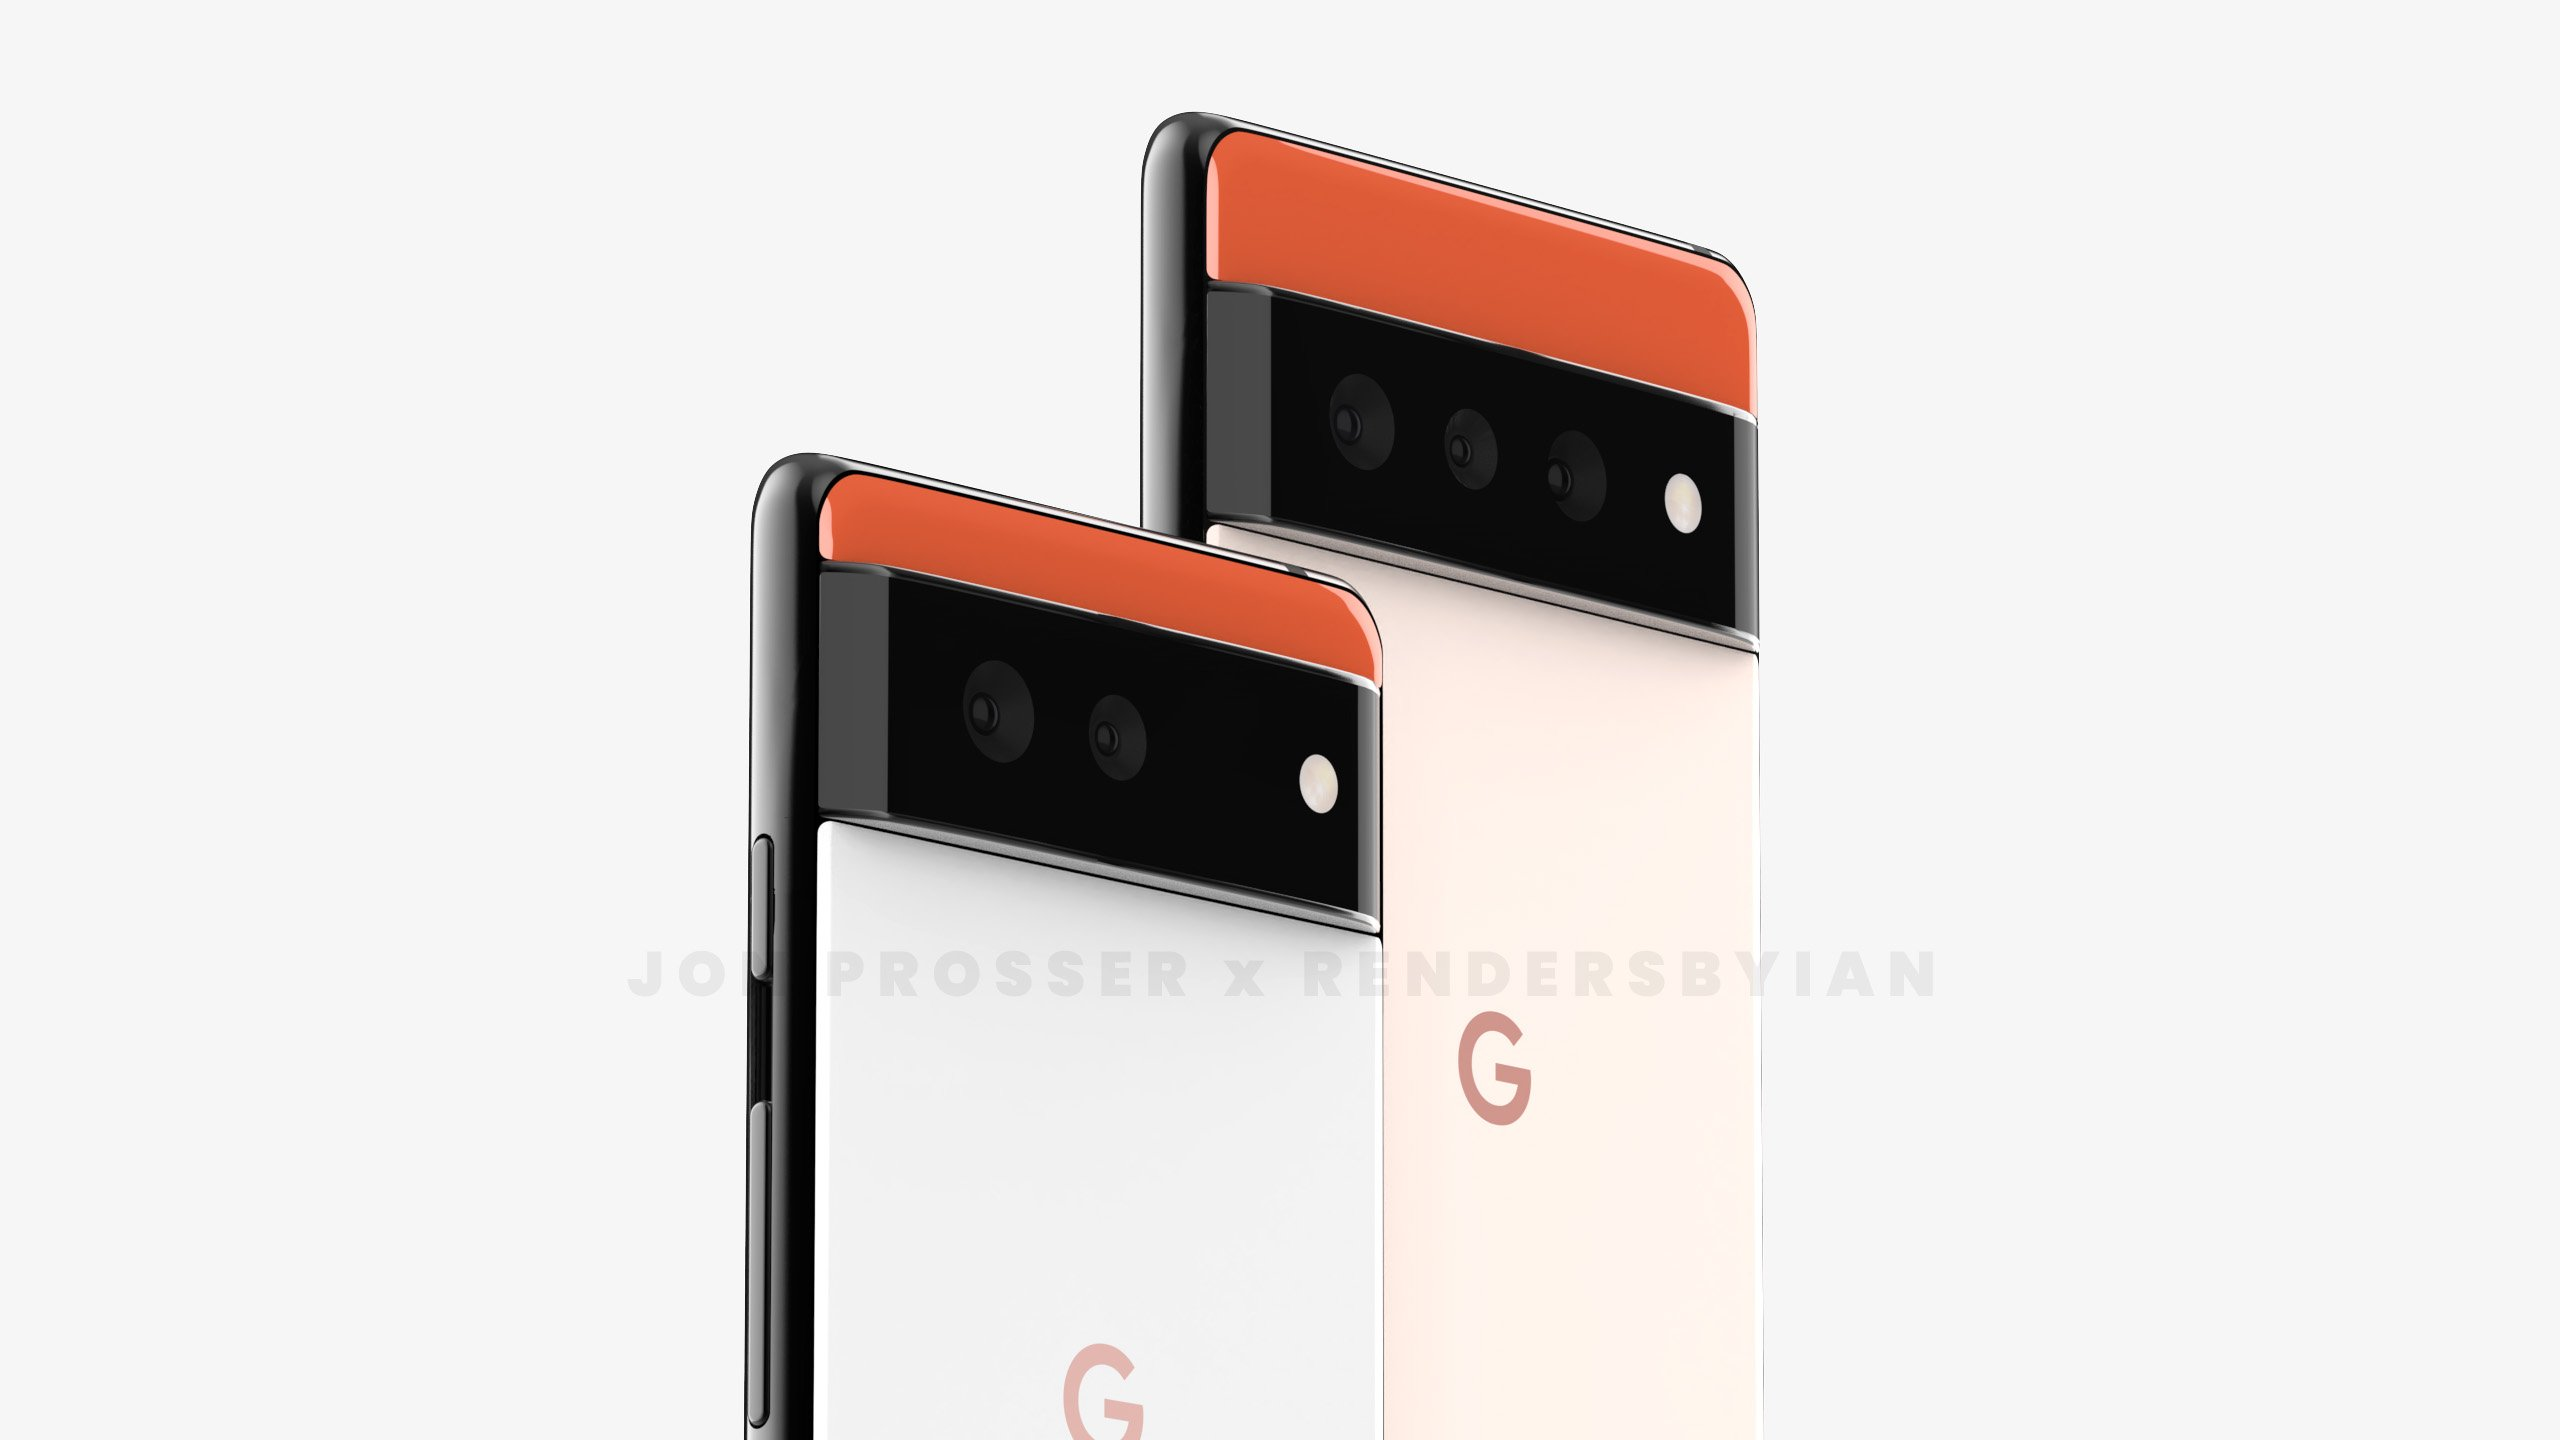 What do you think about the design of the Google Pixel 6?